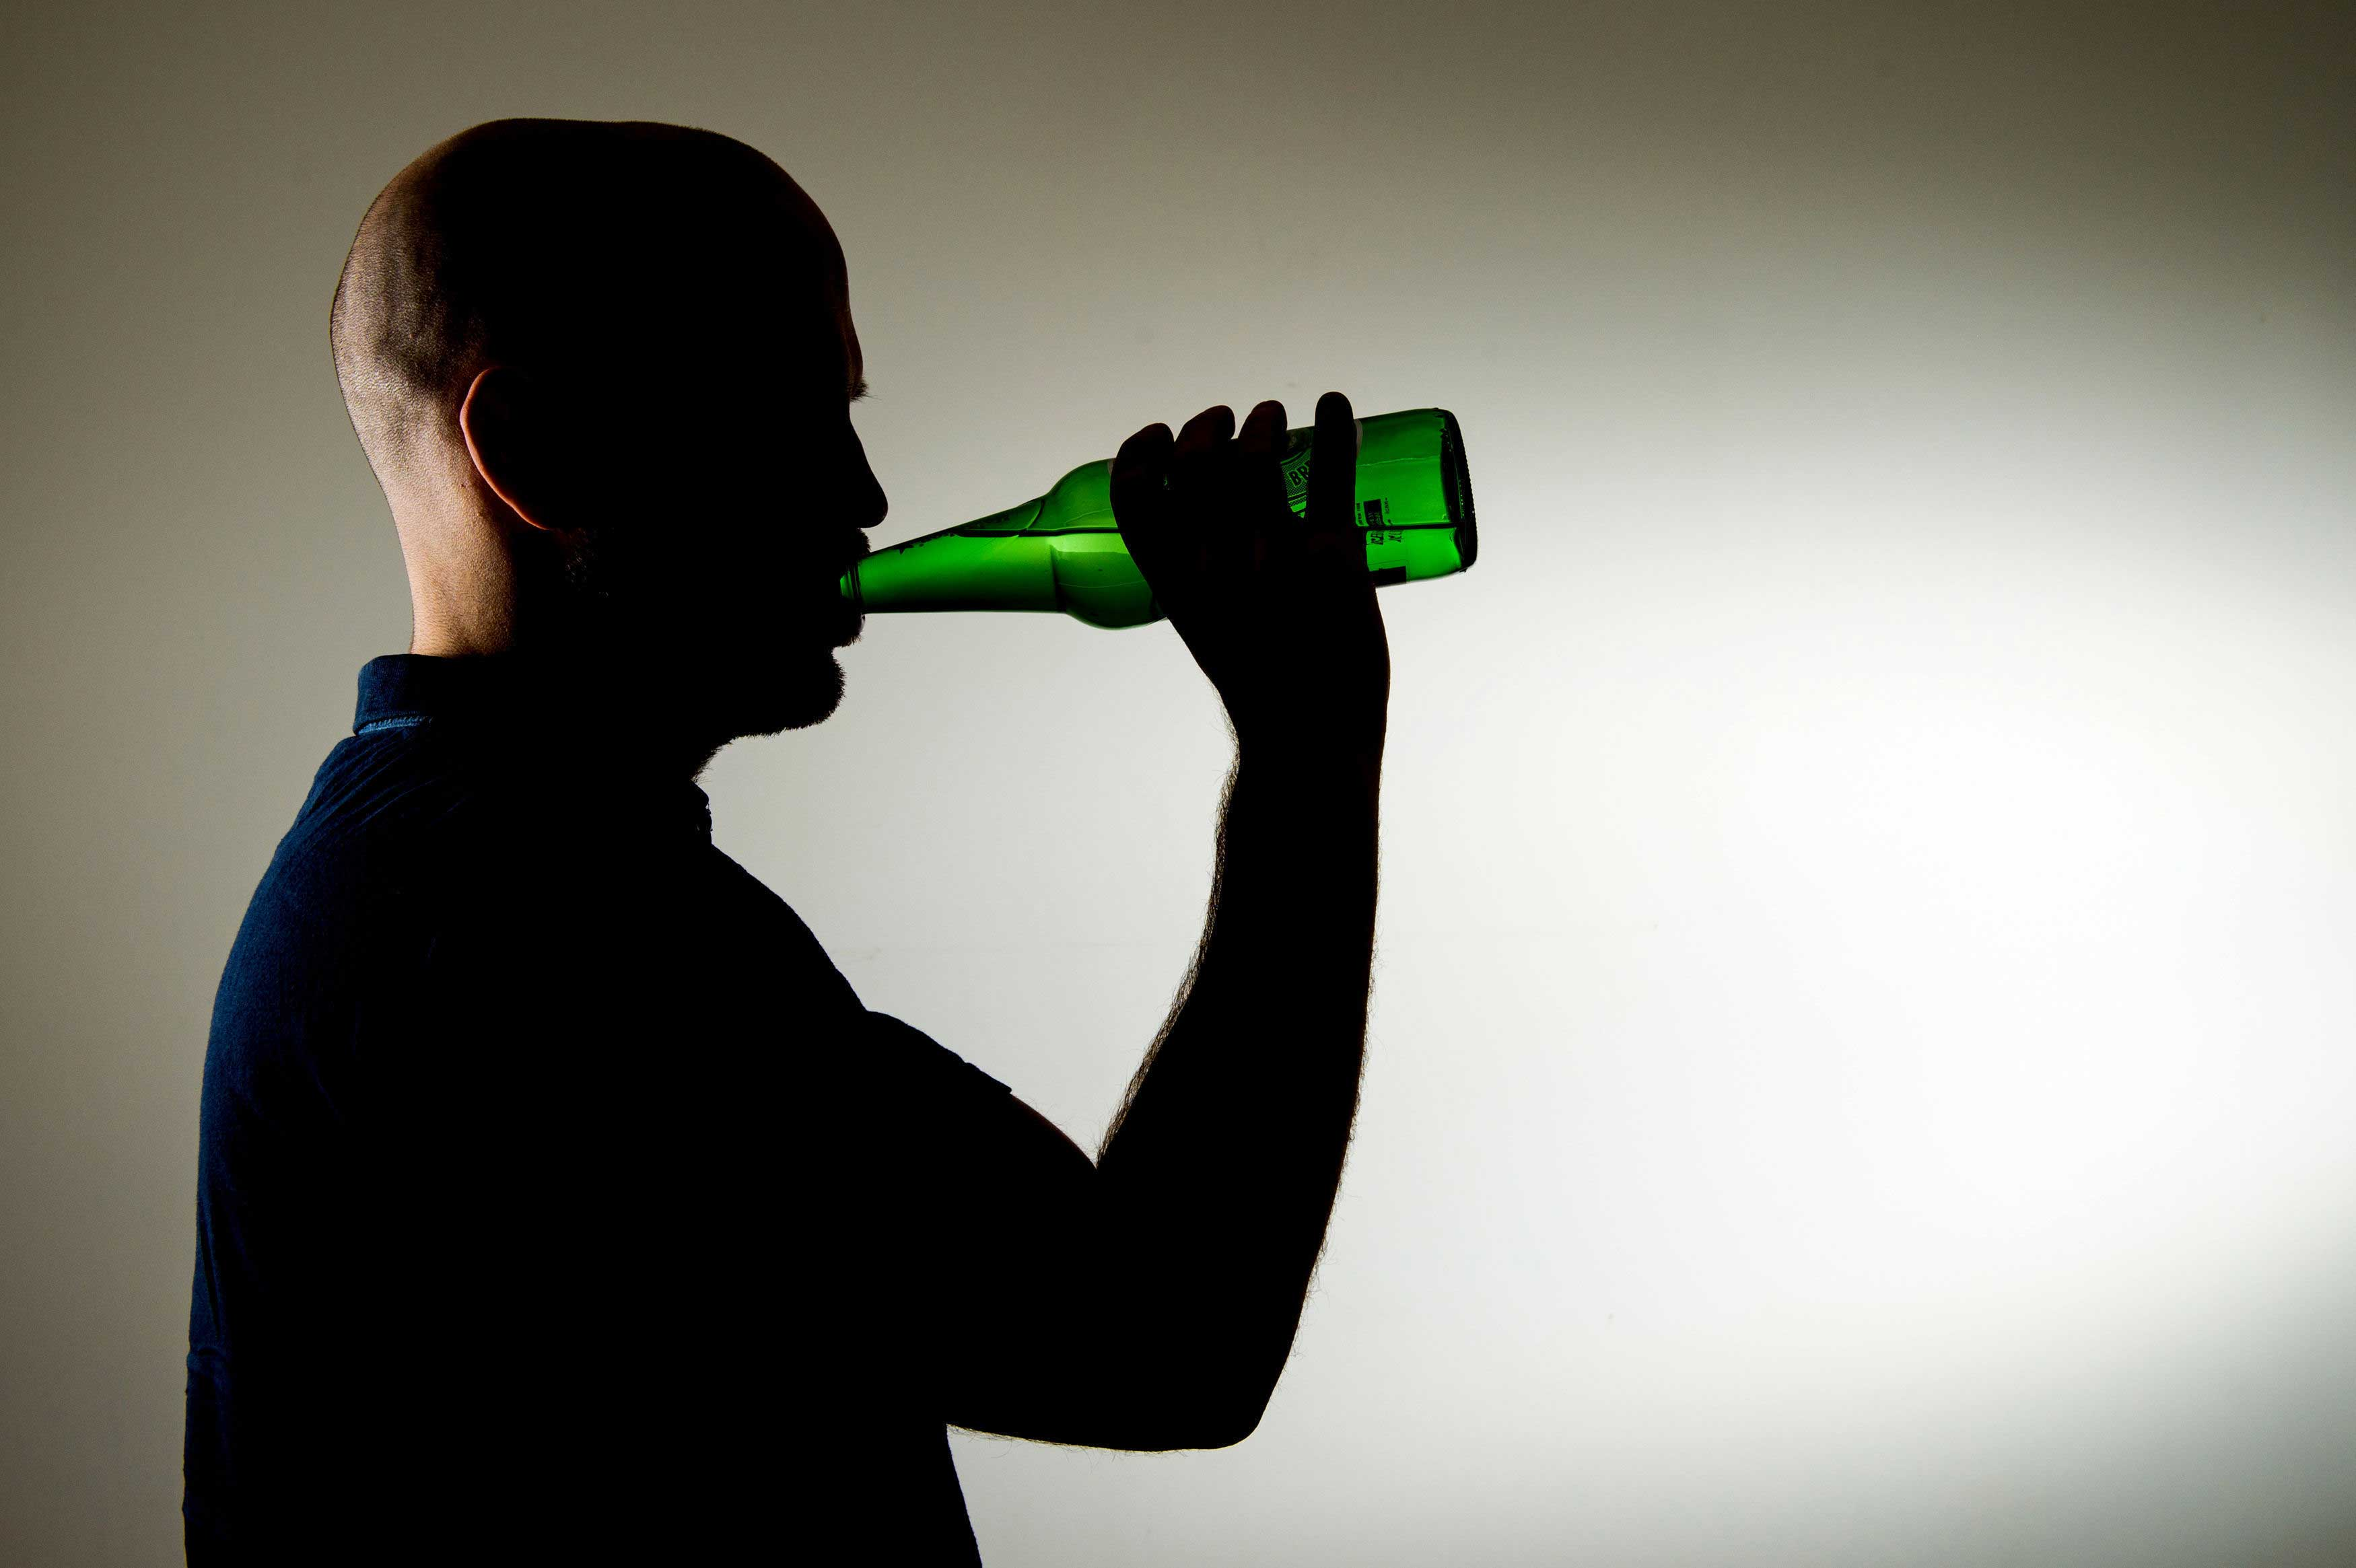 Drinking more than recommended limits can SLASH your life expectancy